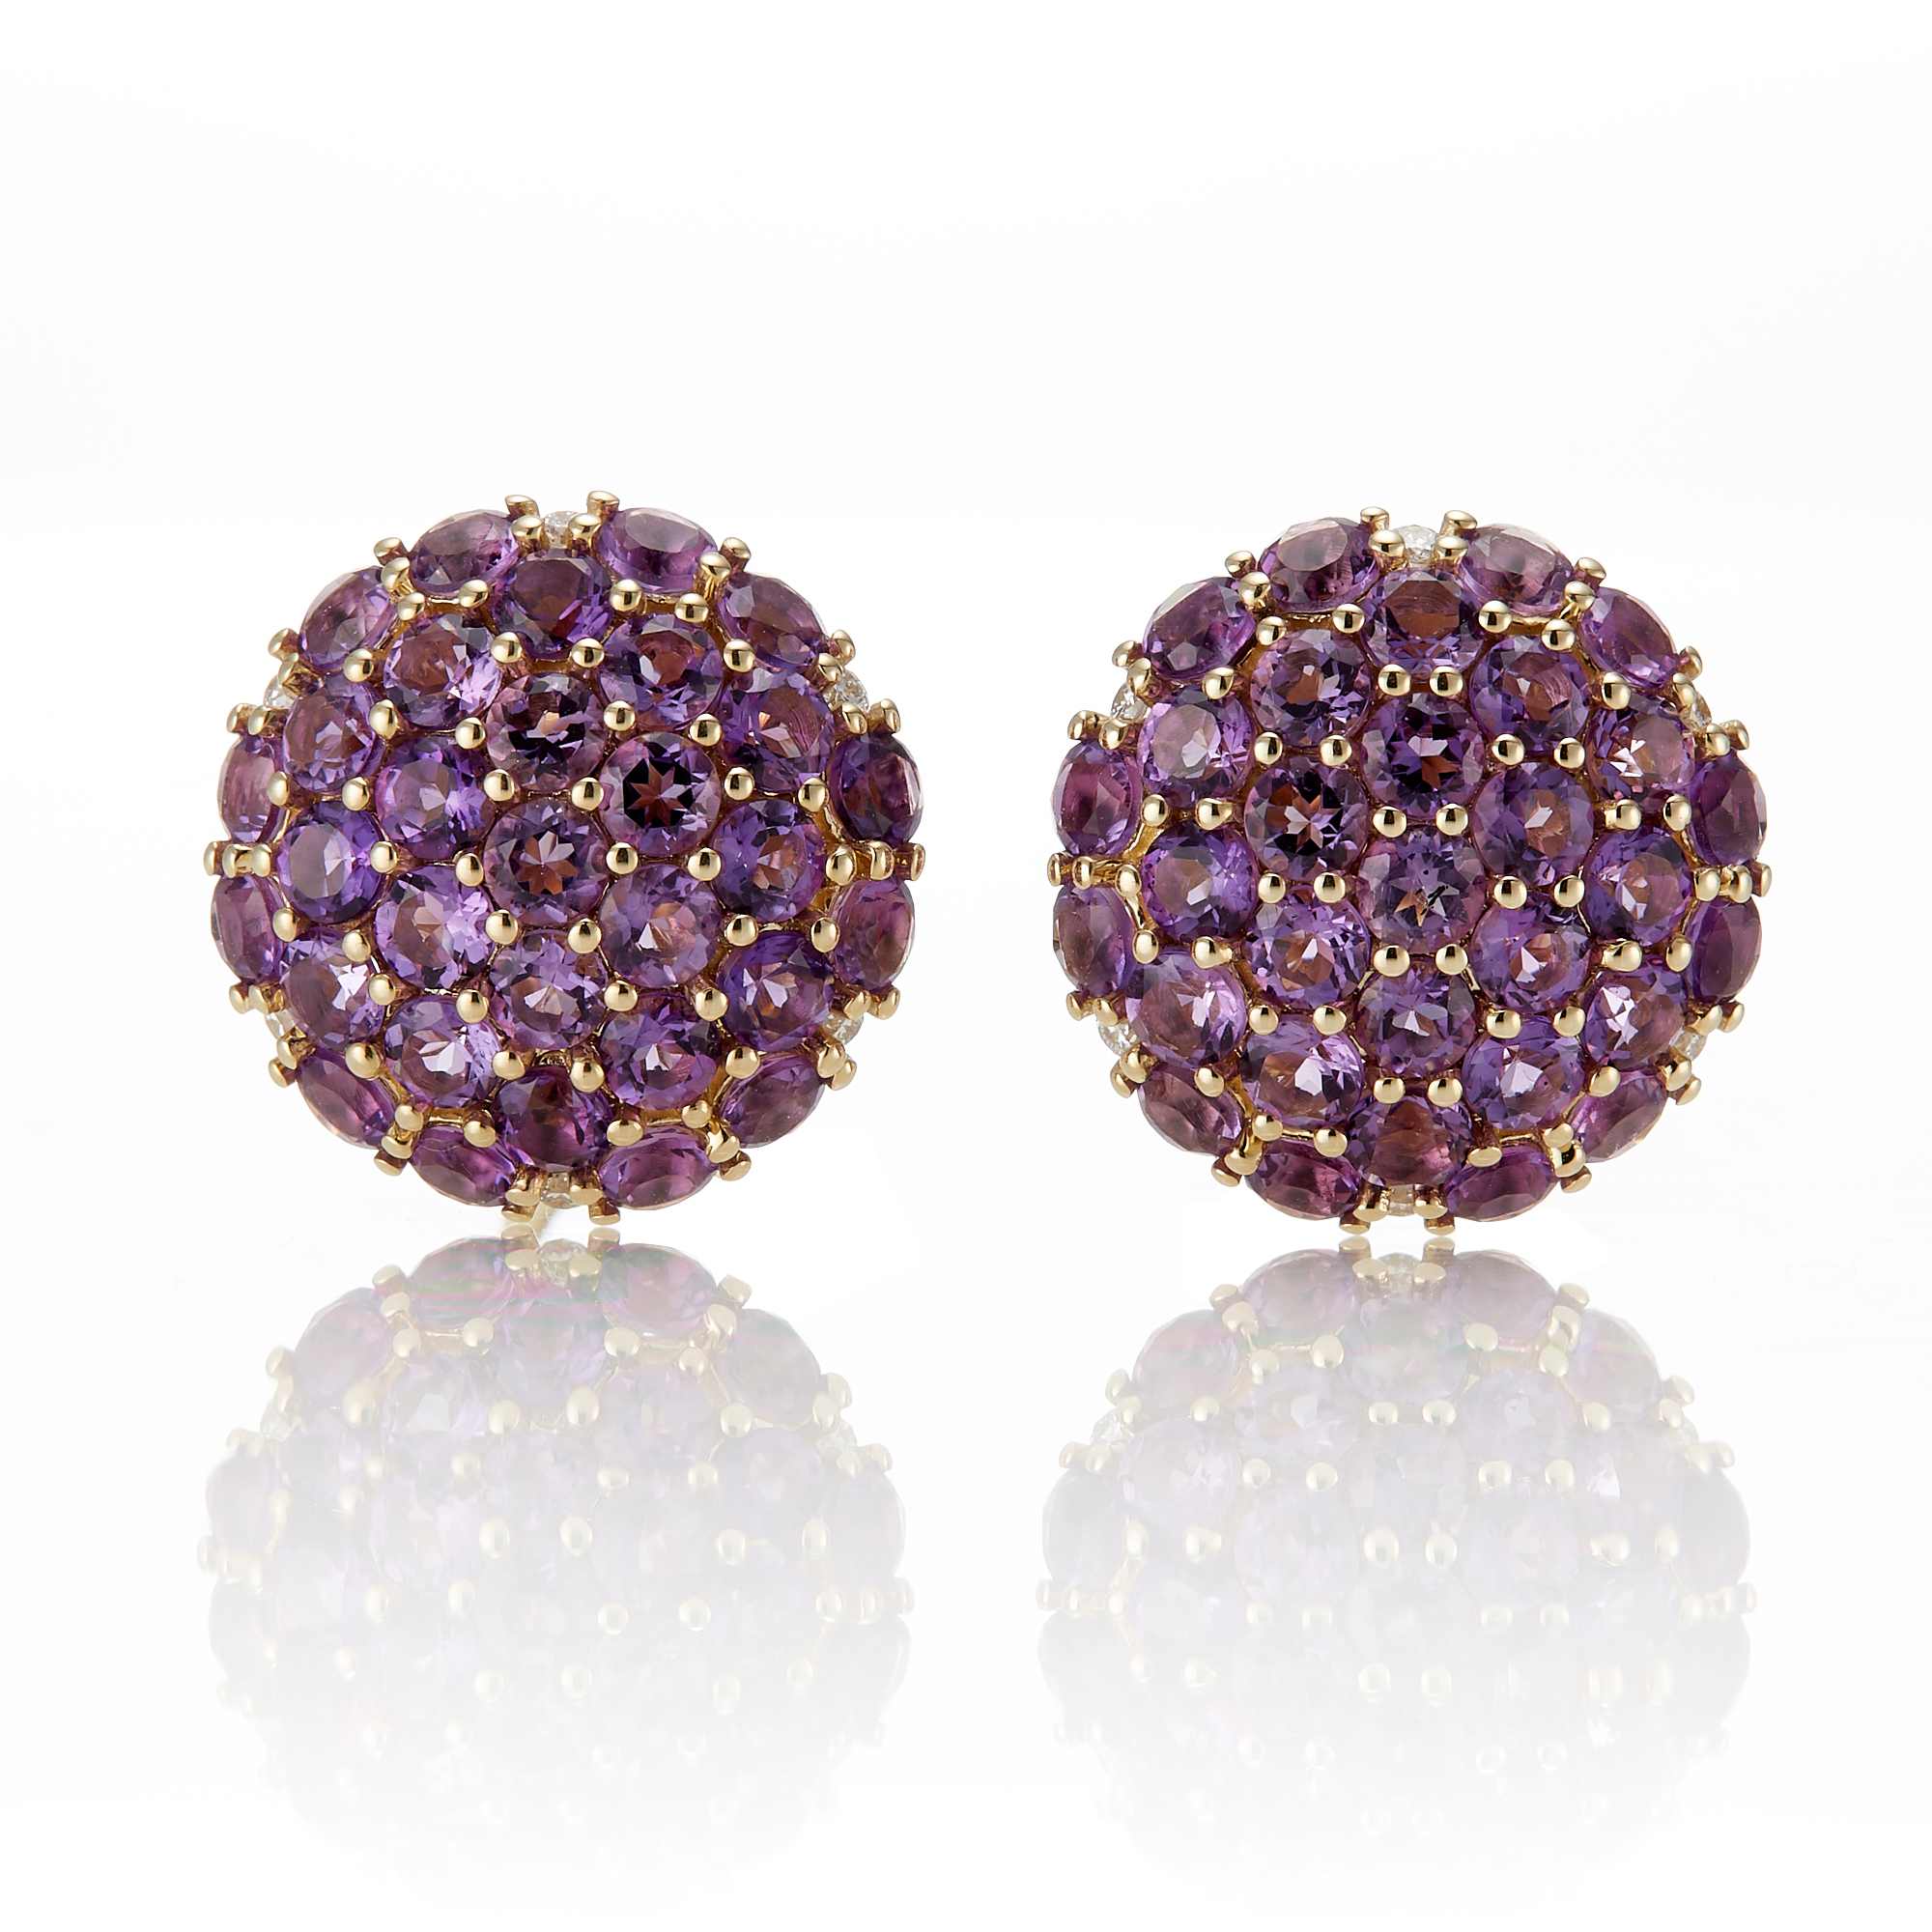 Gump's Amethyst Pave Button Earrings